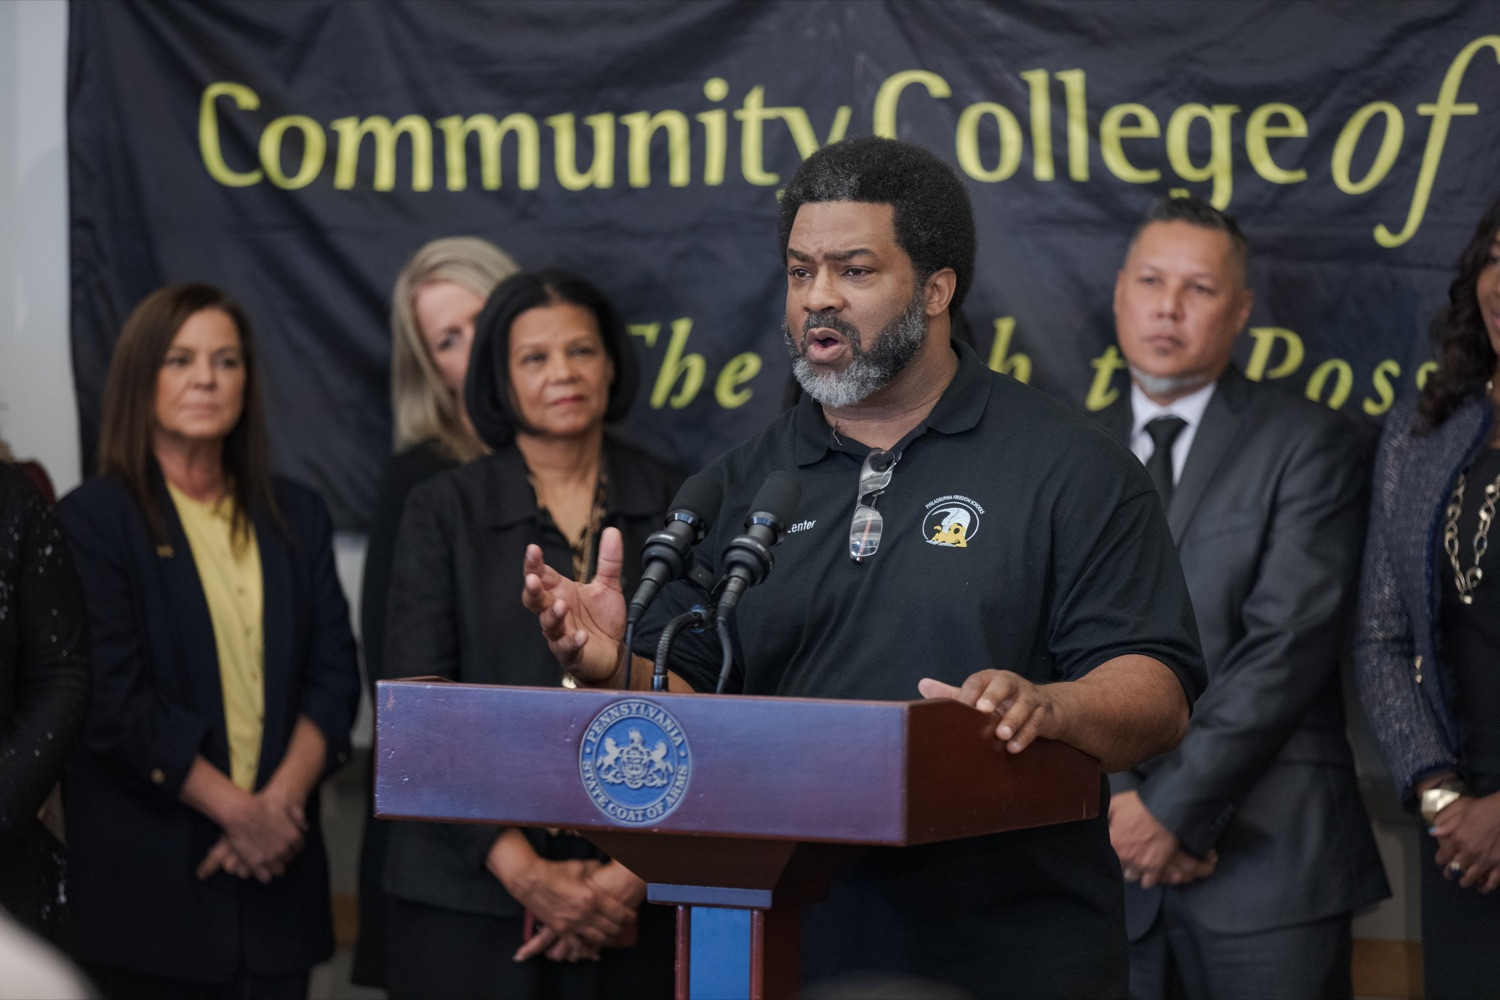 "<a href=""http://filesource.abacast.com/commonwealthofpa/photo/17592_EDU_Aspiring_NK_006.JPG"" target=""_blank"">⇣ Download Photo<br></a>Sharif El-Mekki, founder of the Center for Black Educator Development, speaks during a press conference, announcing the School District of Philadelphia's new pilot program, Aspiring to Educate, that aims to cultivate and diversify the citys educator pool, inside Community College of Philadelphia's Center for Business and Industry on Wednesday, November 20, 2019."